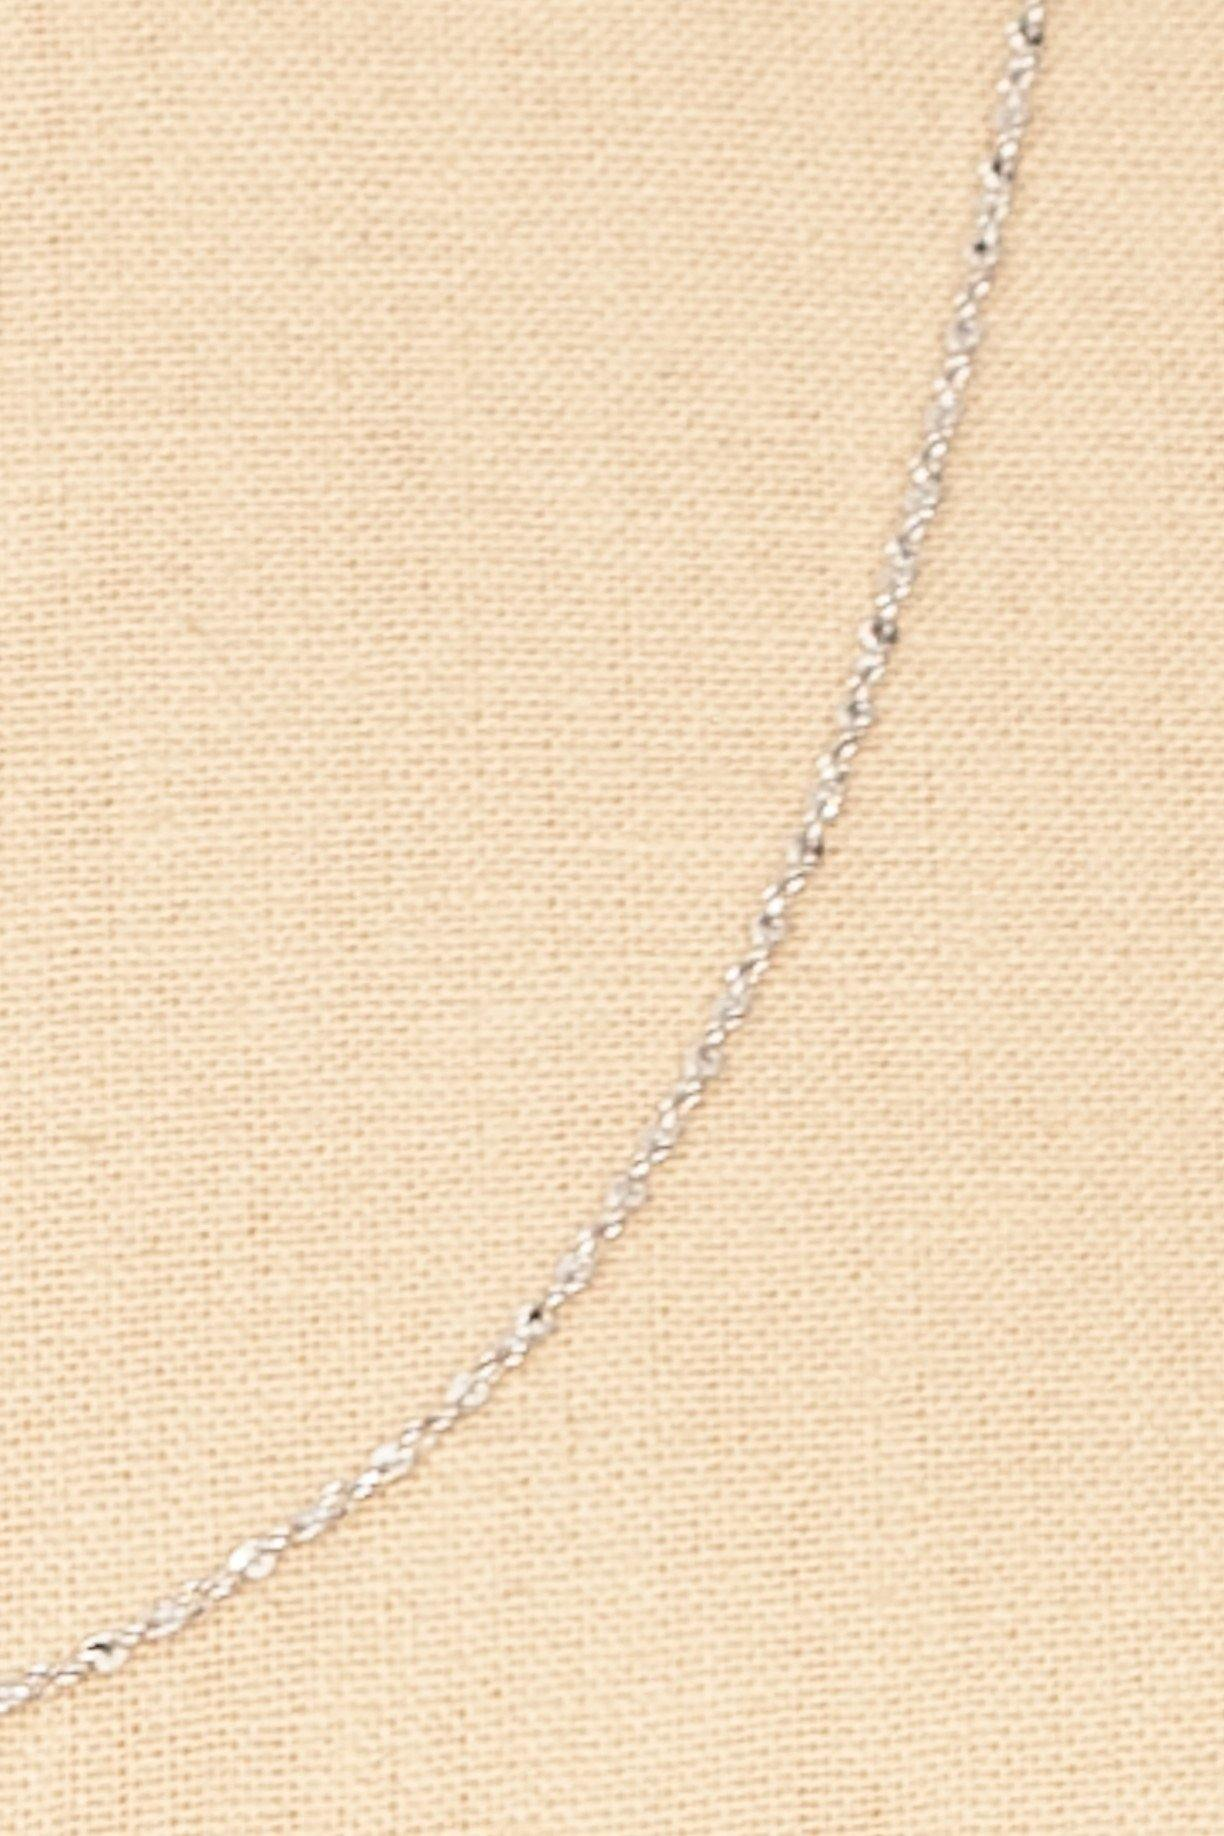 70's__Monet__Dainty Silver Necklace